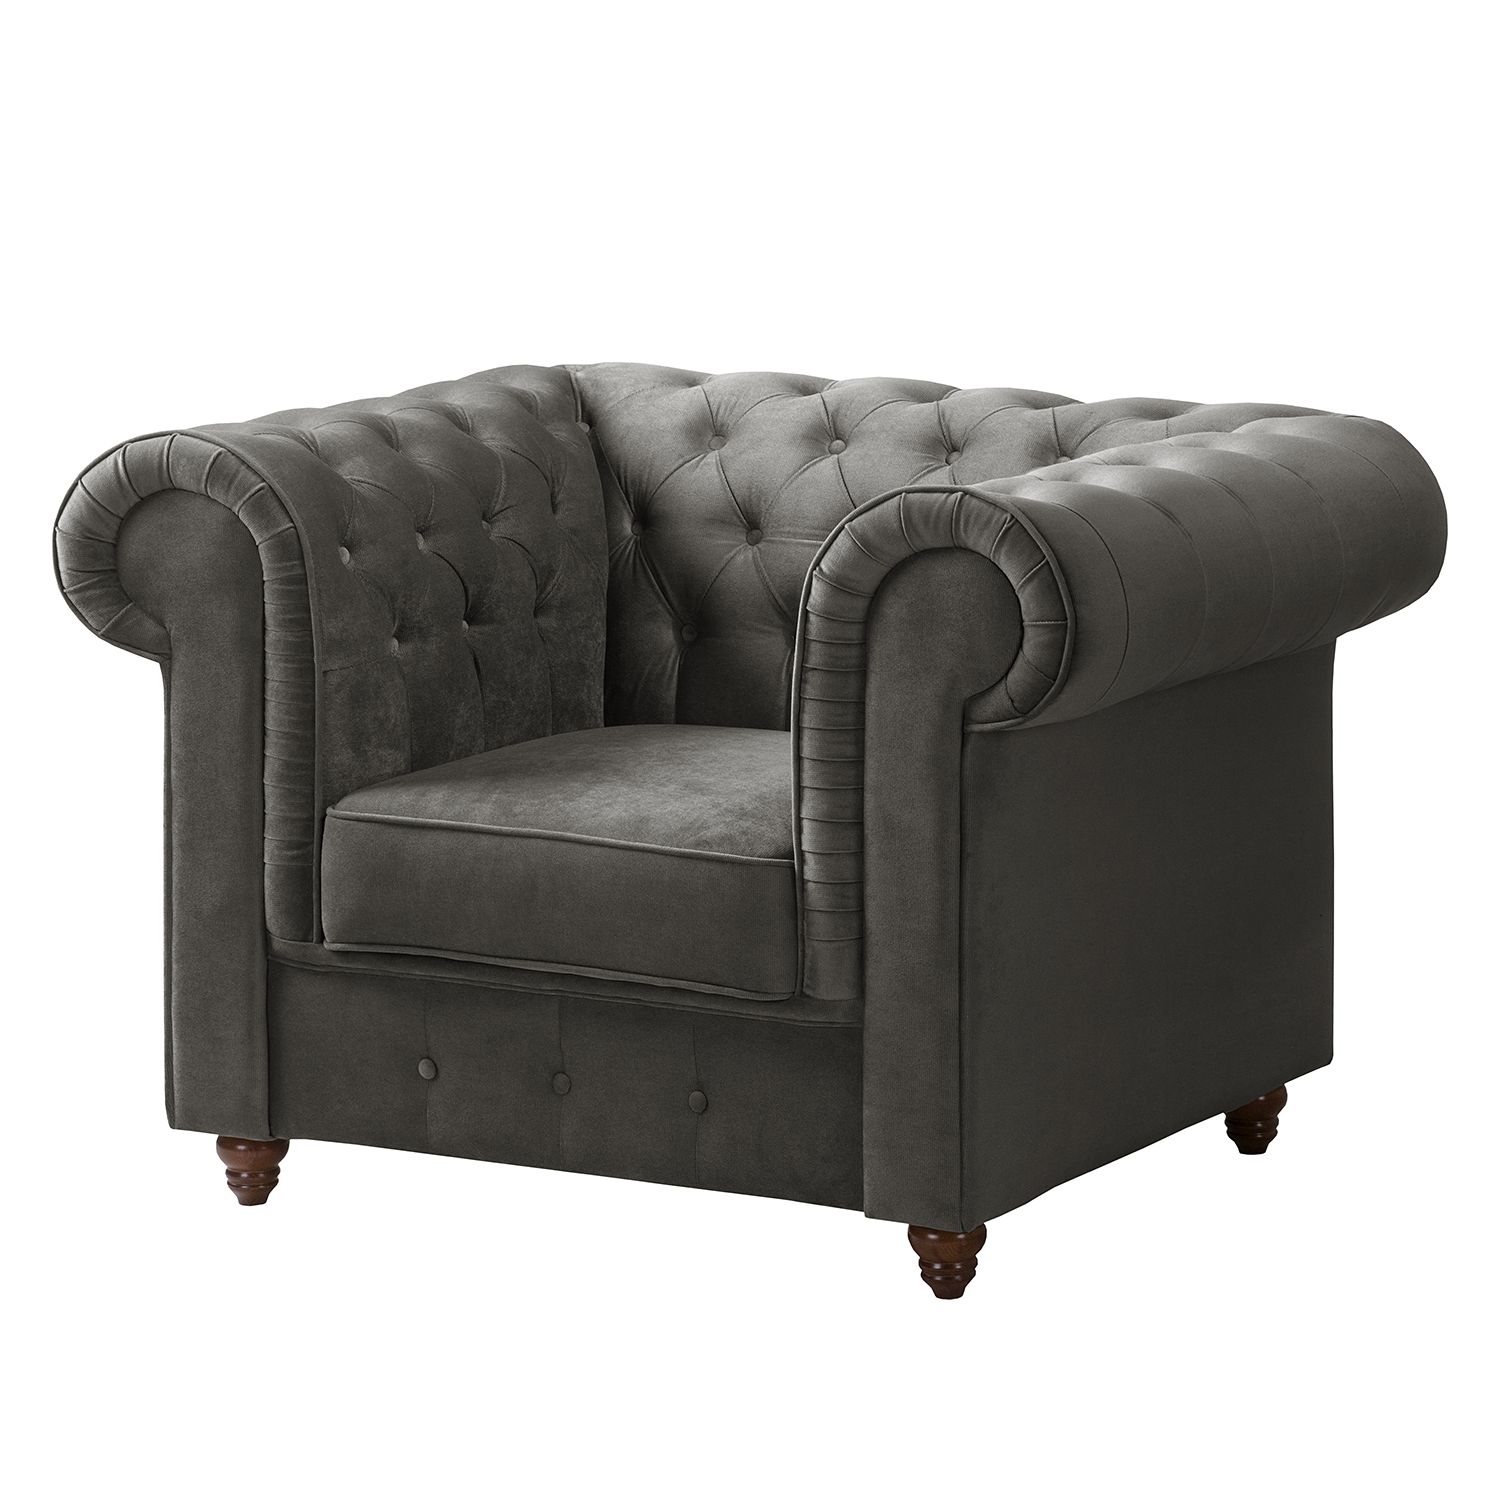 Fauteuil Chesterfield Pintano - Velours - Gris, ars manufacti